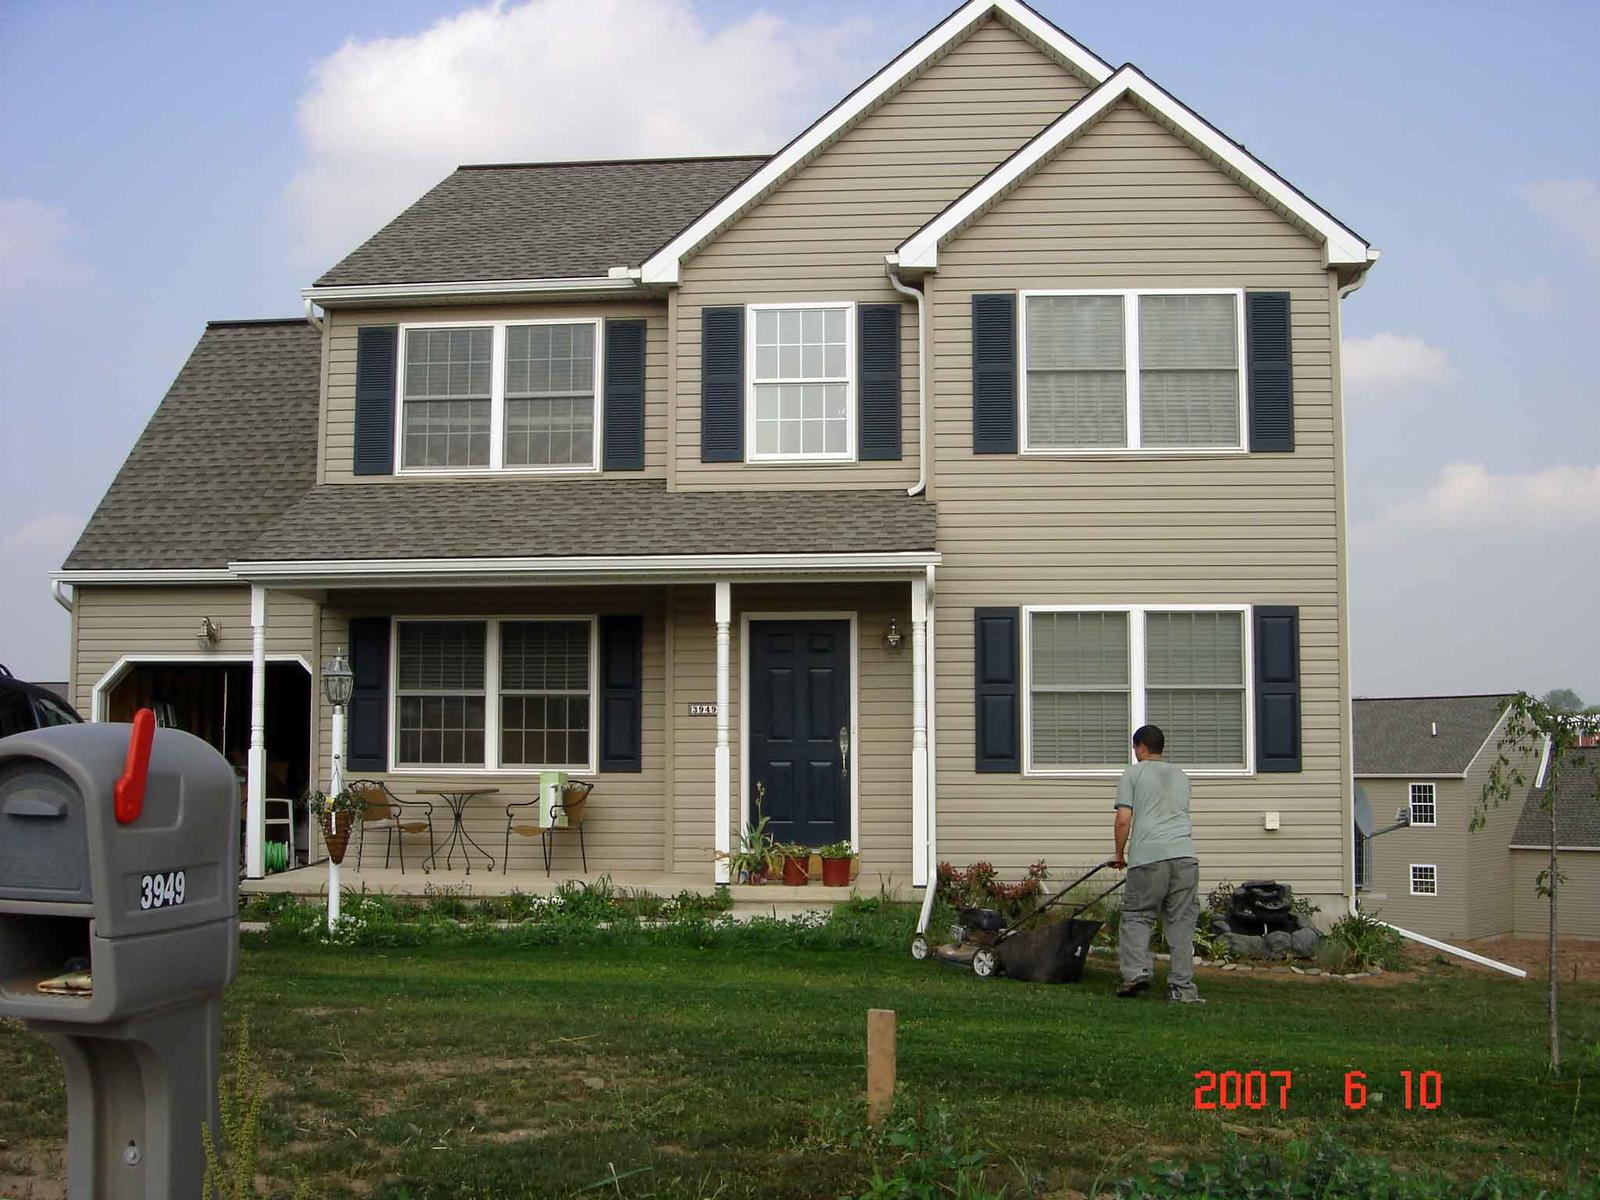 Best Kitchen Gallery: New House For Sale In Dover York Area 208 000 00 Classified Ads of New House Sale on rachelxblog.com